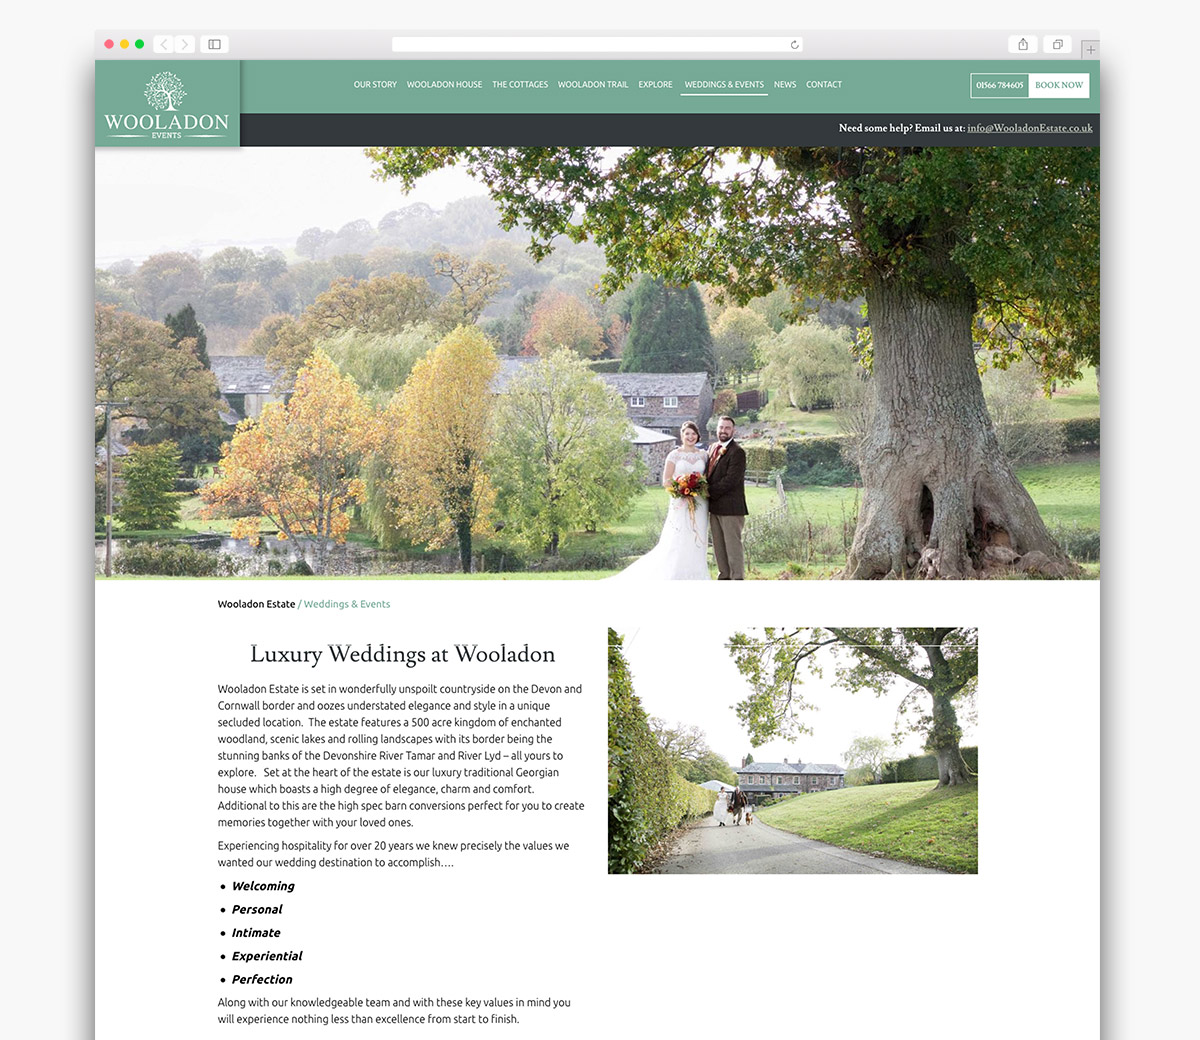 Wooladon Estate Wordpress Page Design